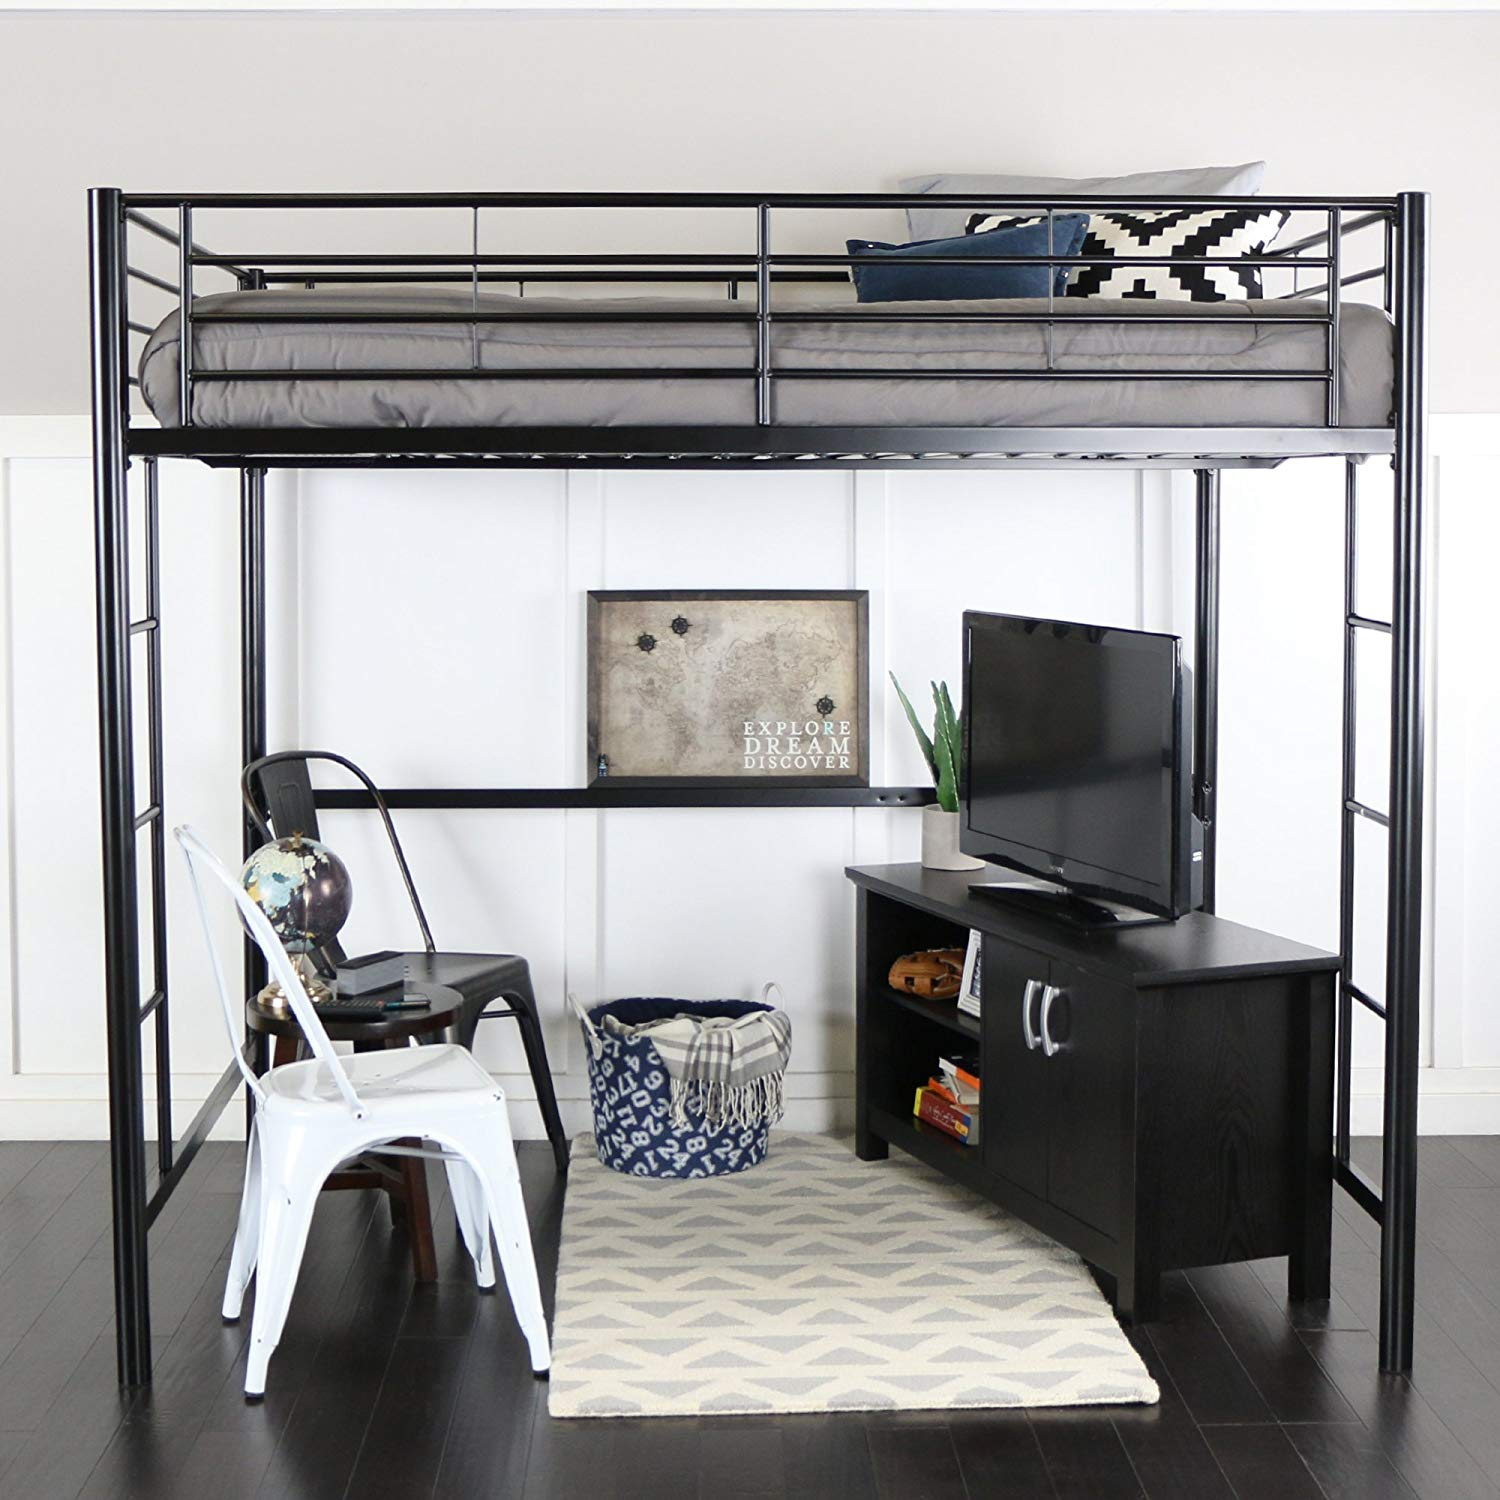 Loft Bed that fits over a queen size bed